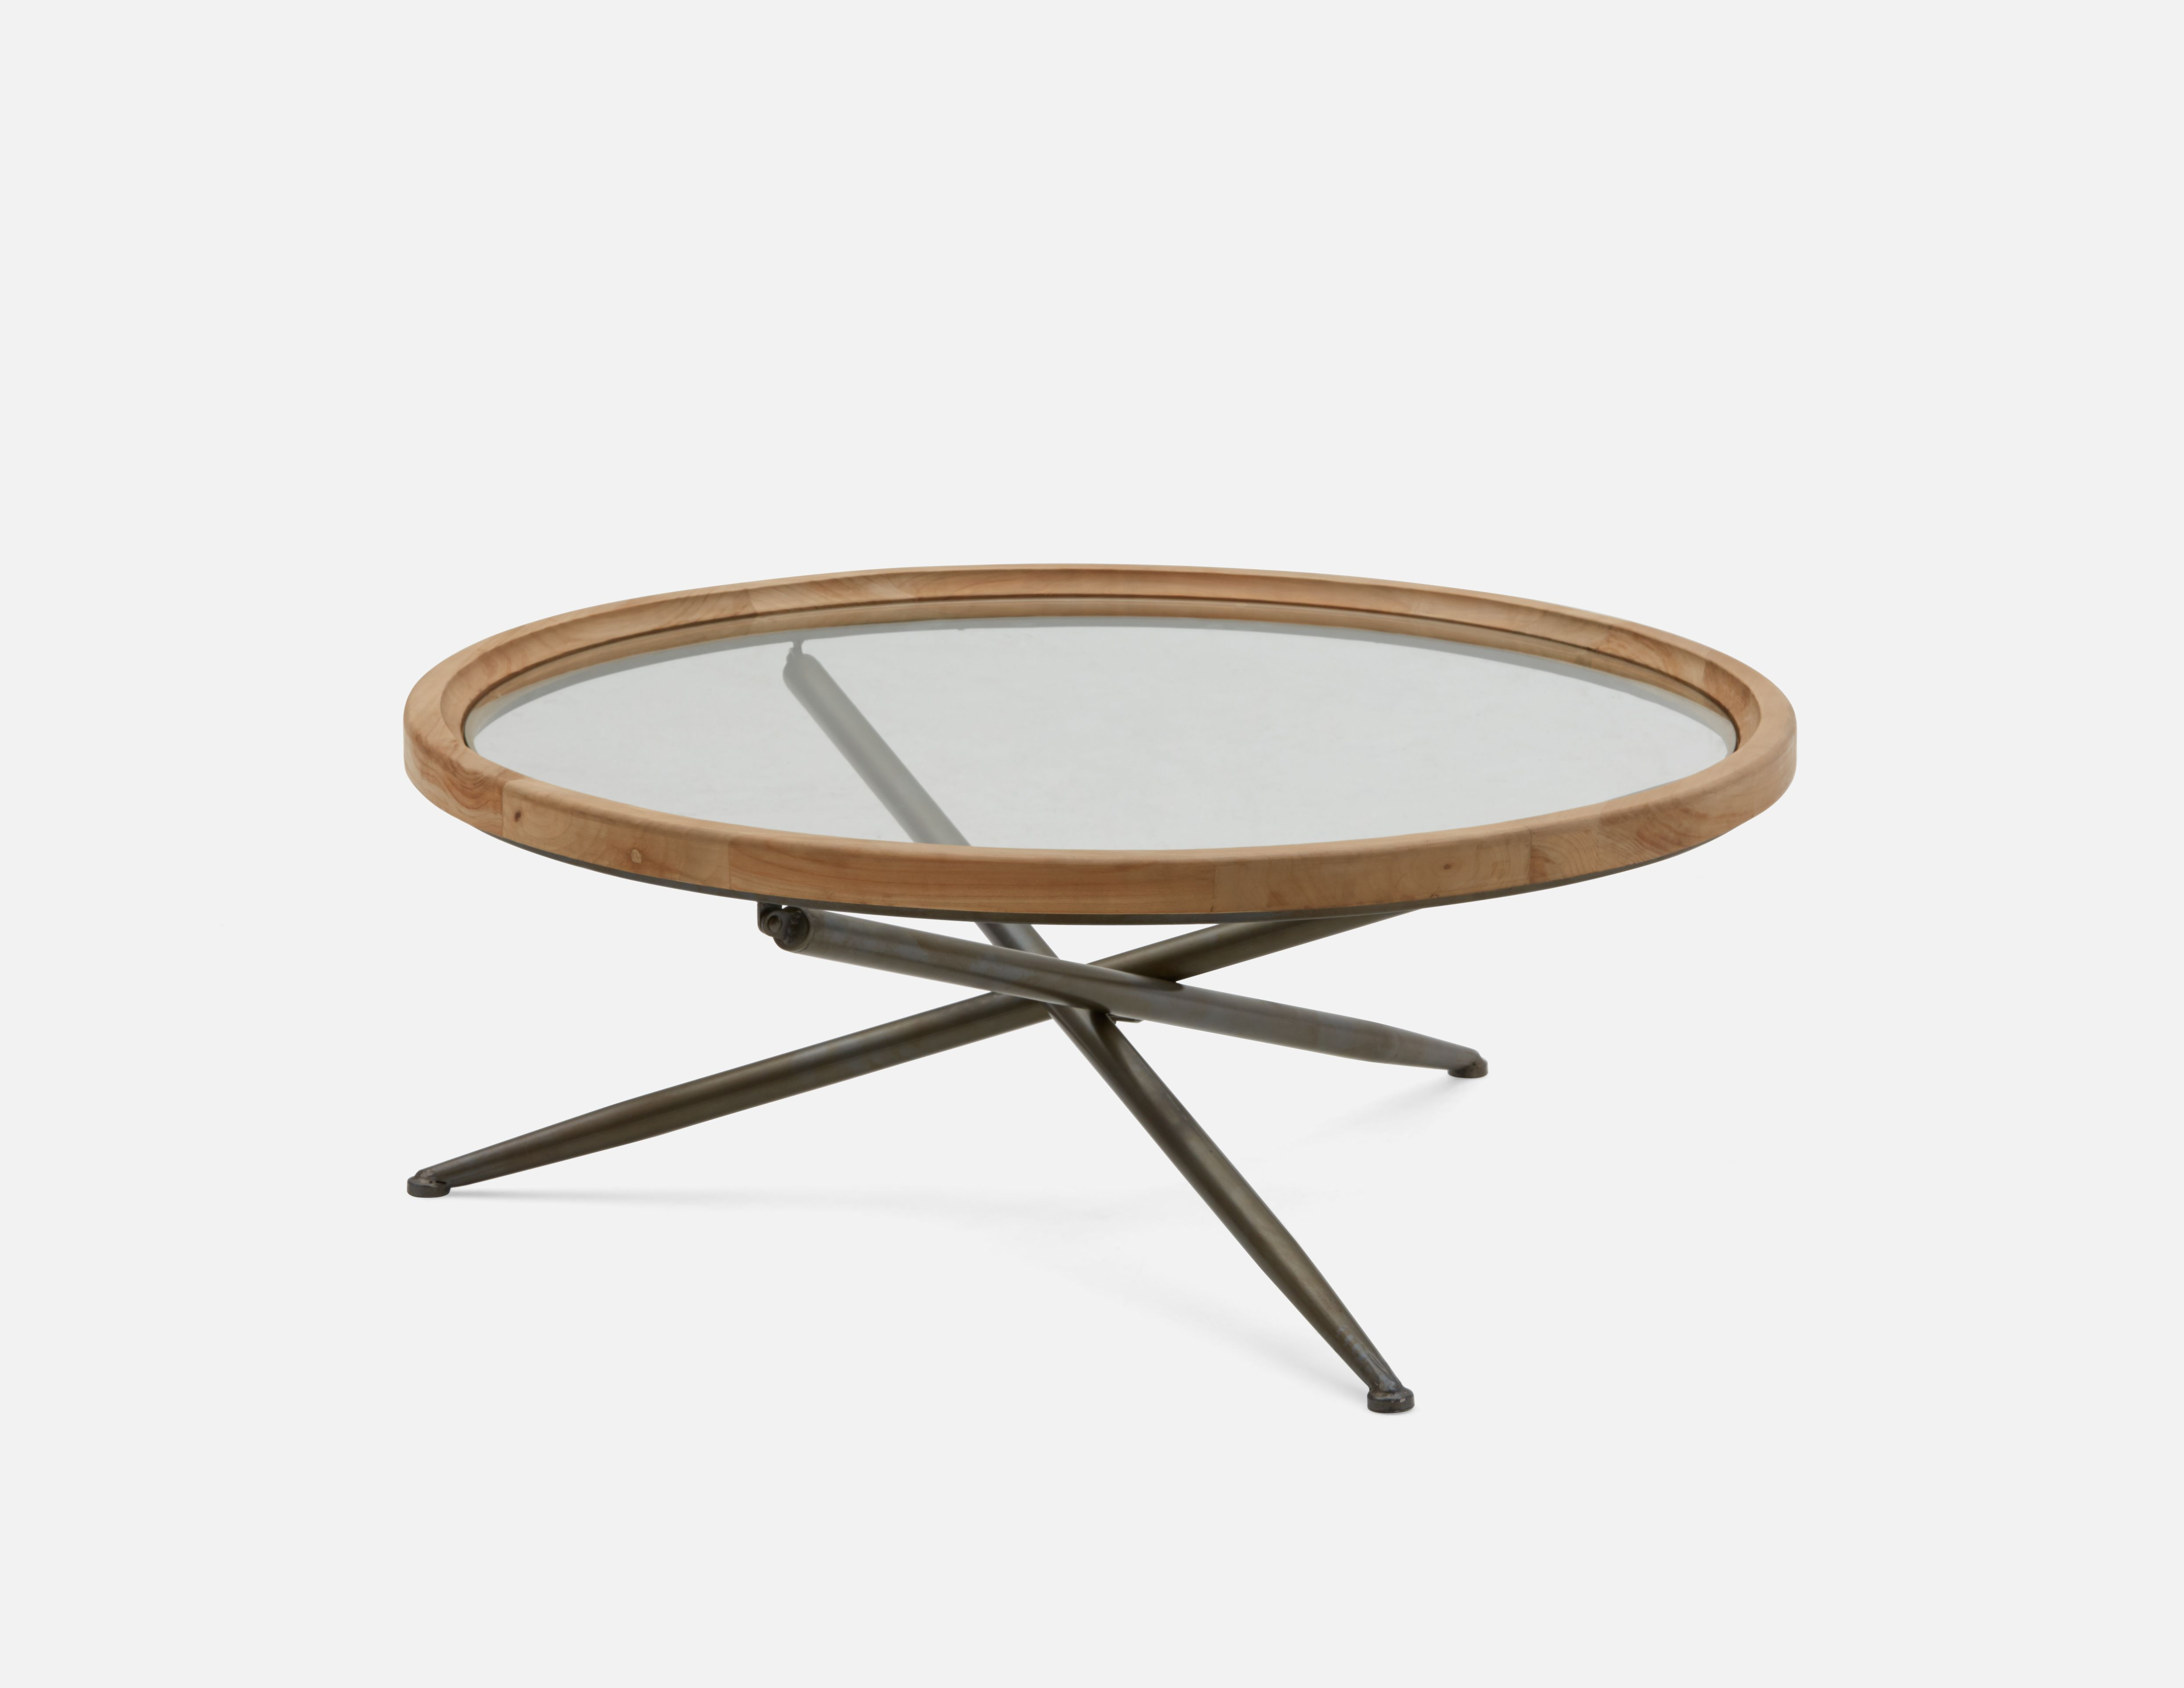 Structube Fir Wood Coffee Table With Tempered Glass Top 100cm Kay Coffee Table Coffee Table Wood Coffee Table Structube [ 3840 x 4969 Pixel ]